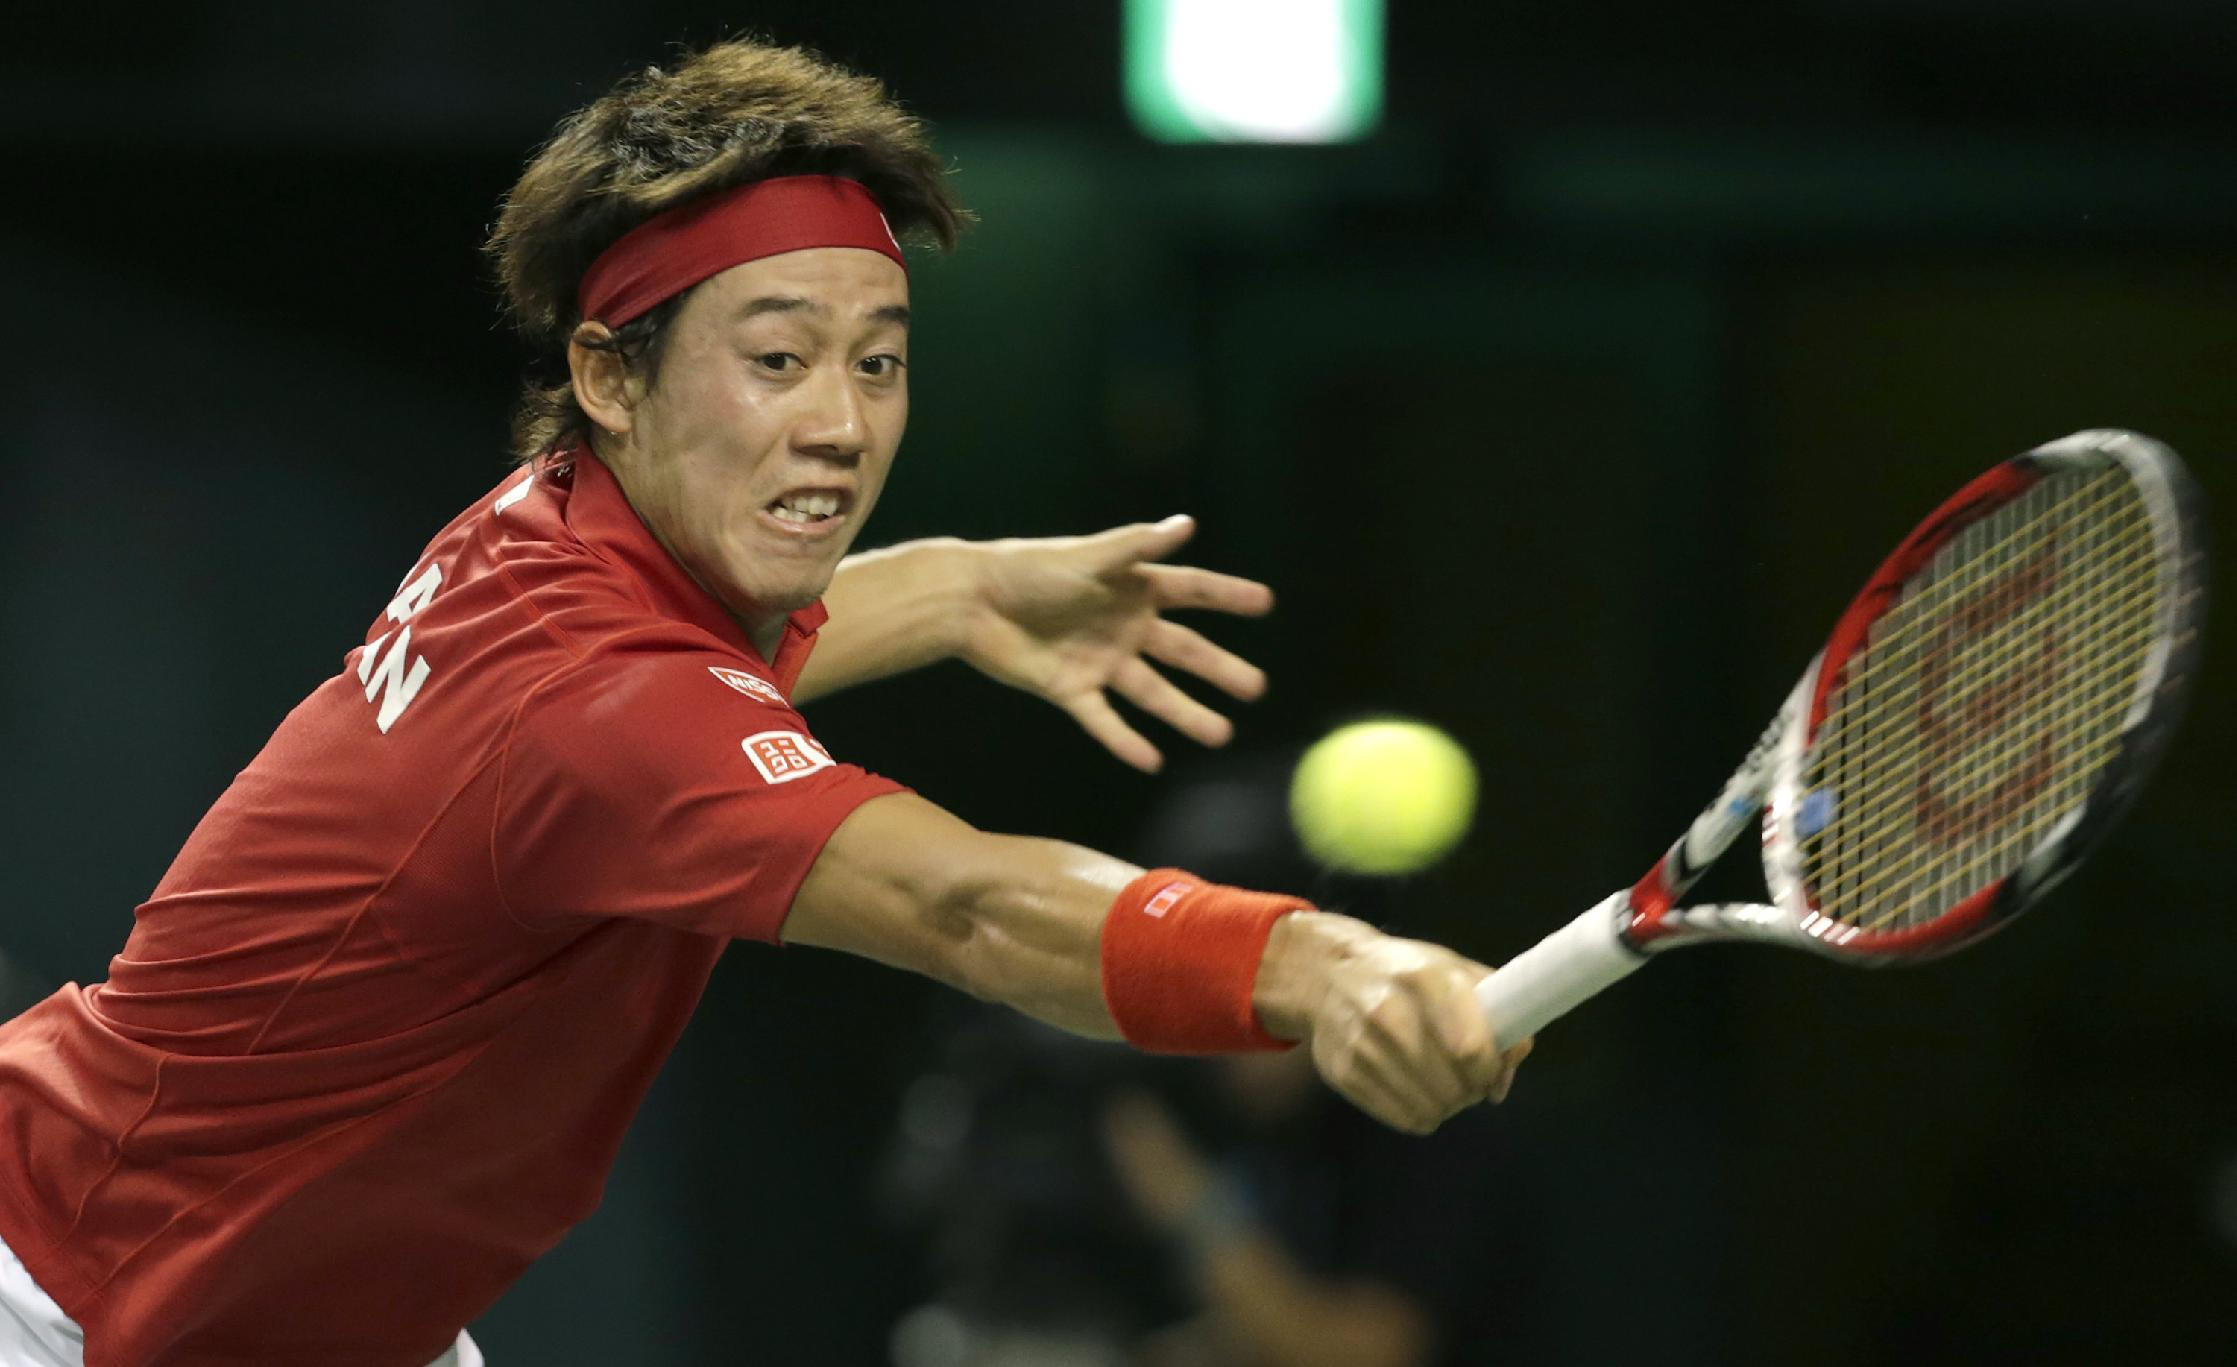 Kei Nishikori of Japan returns a shot to Colombia's Santiago Giraldo during the Davis Cup World Group play off in Tokyo, Sunday, Sept. 15, 2013. Nishikori won 6-1, 6-2, 6-4